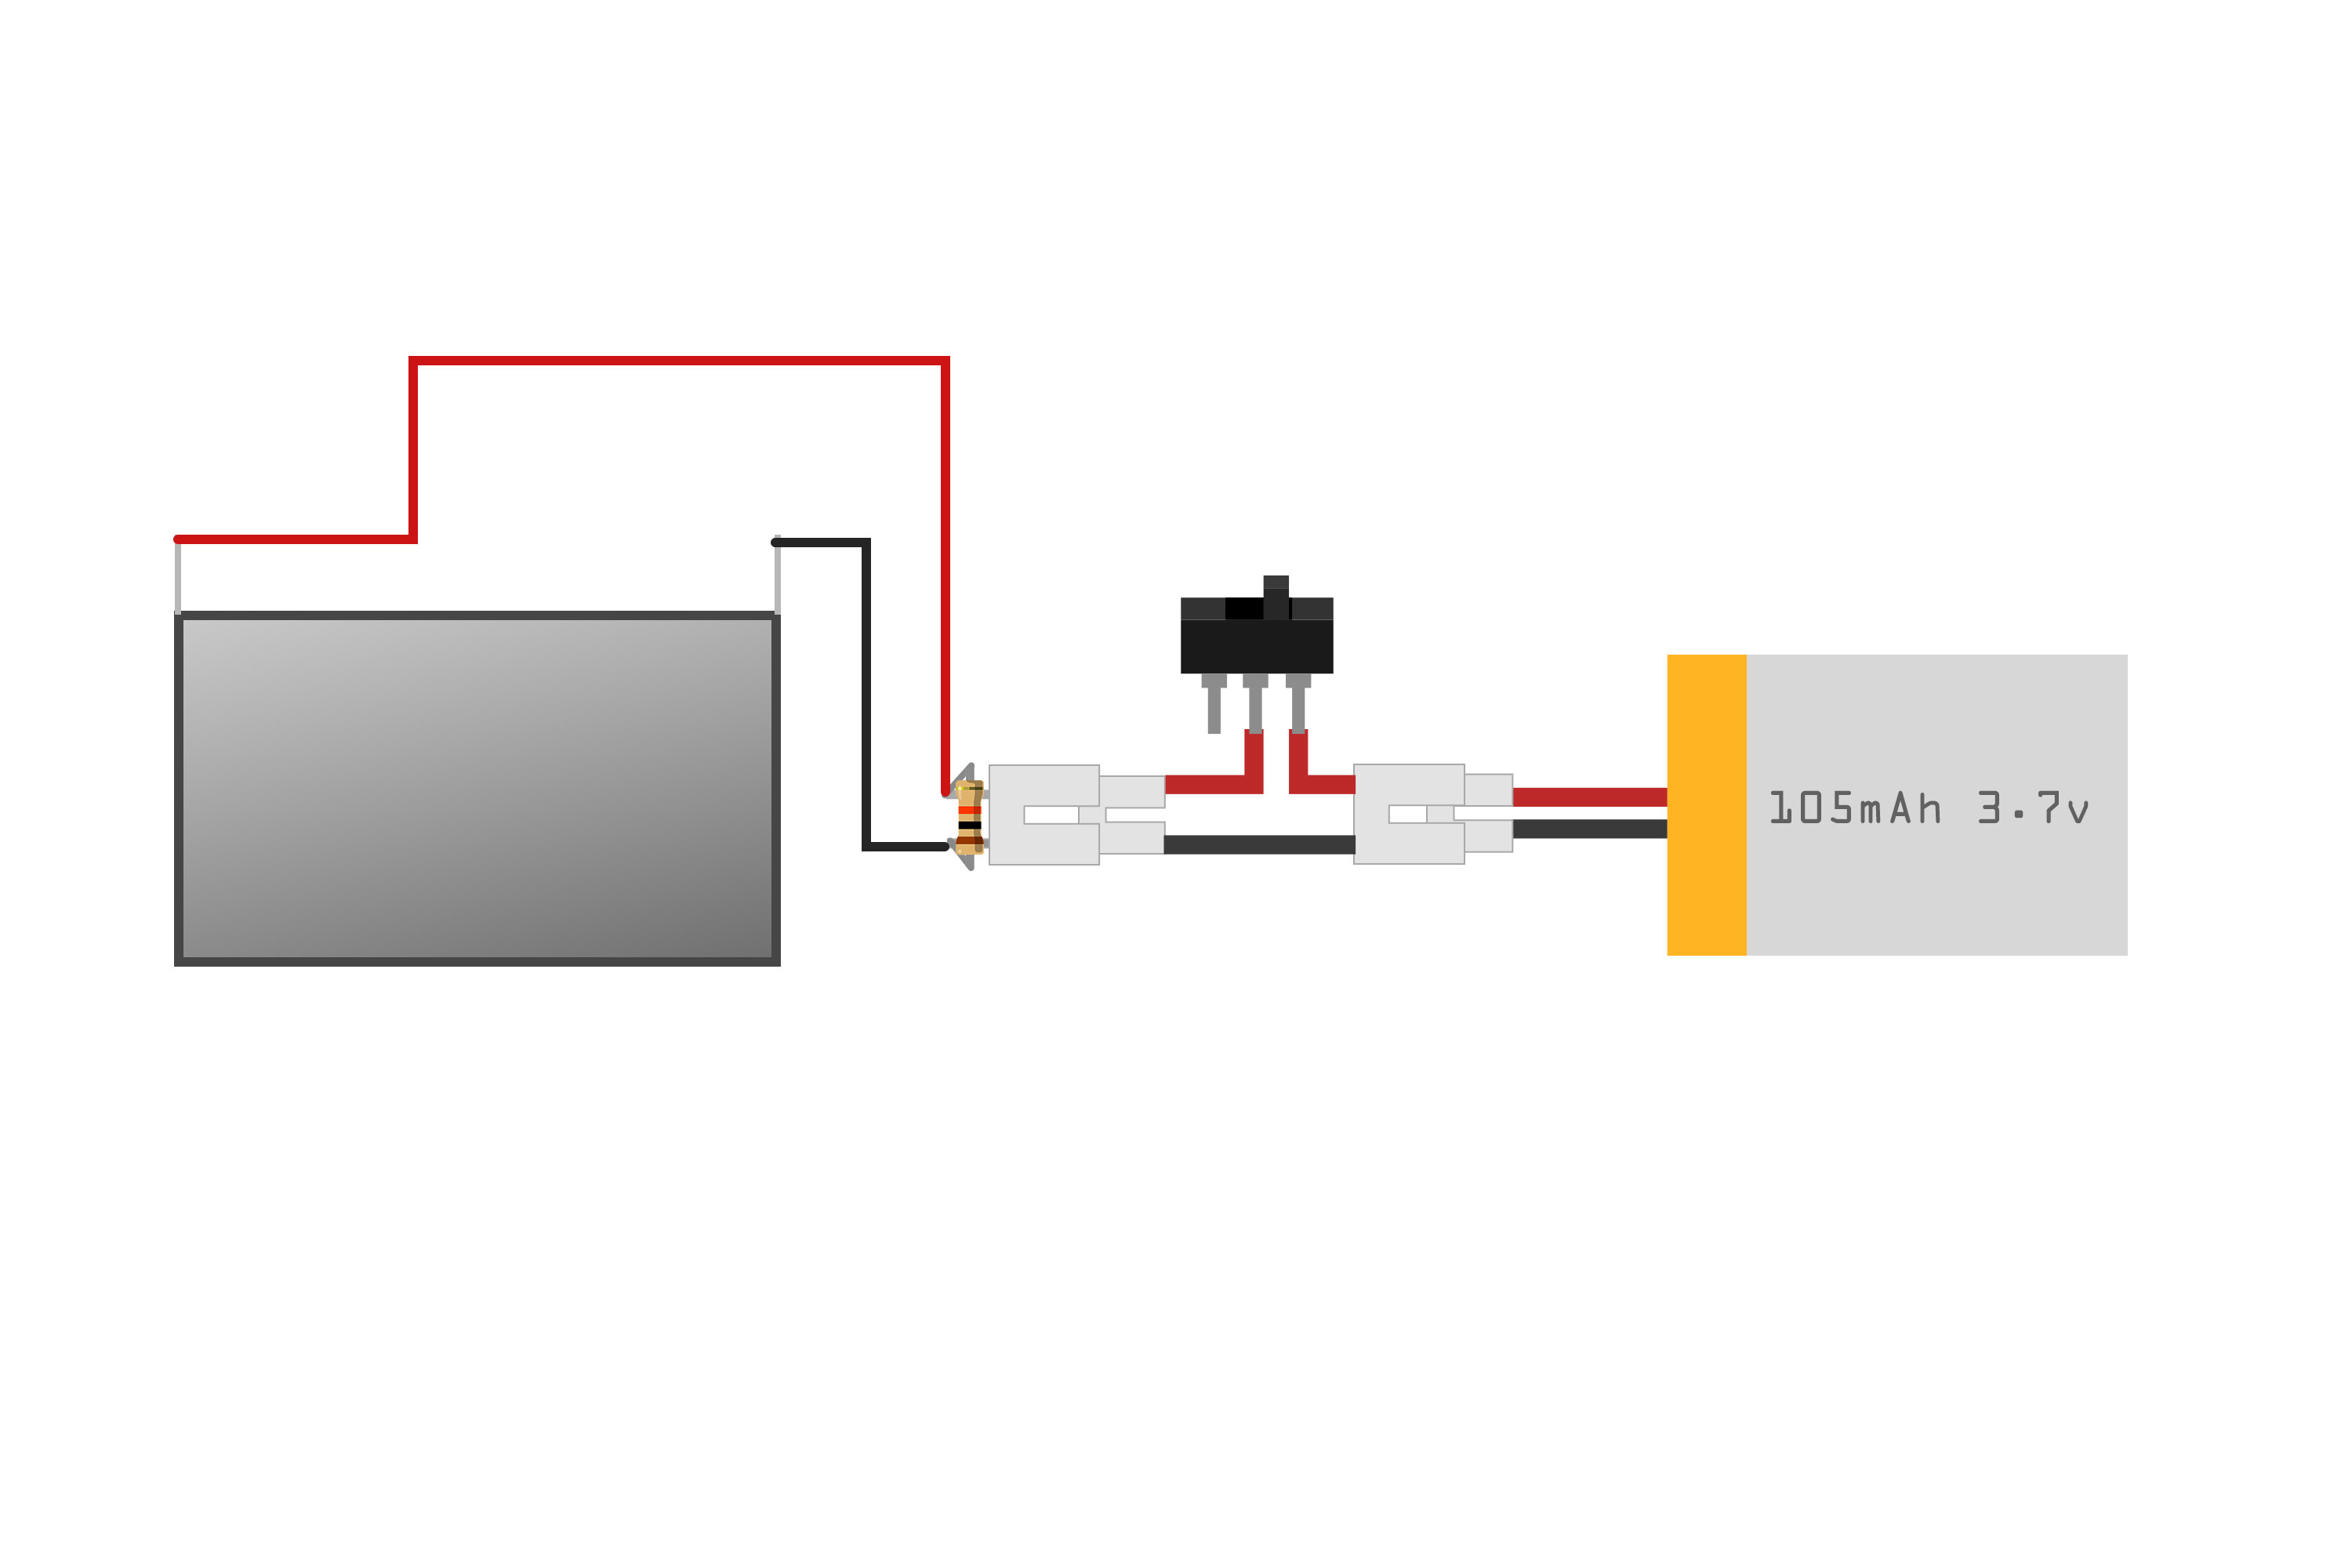 lcds___displays_circuit-diagram.jpg